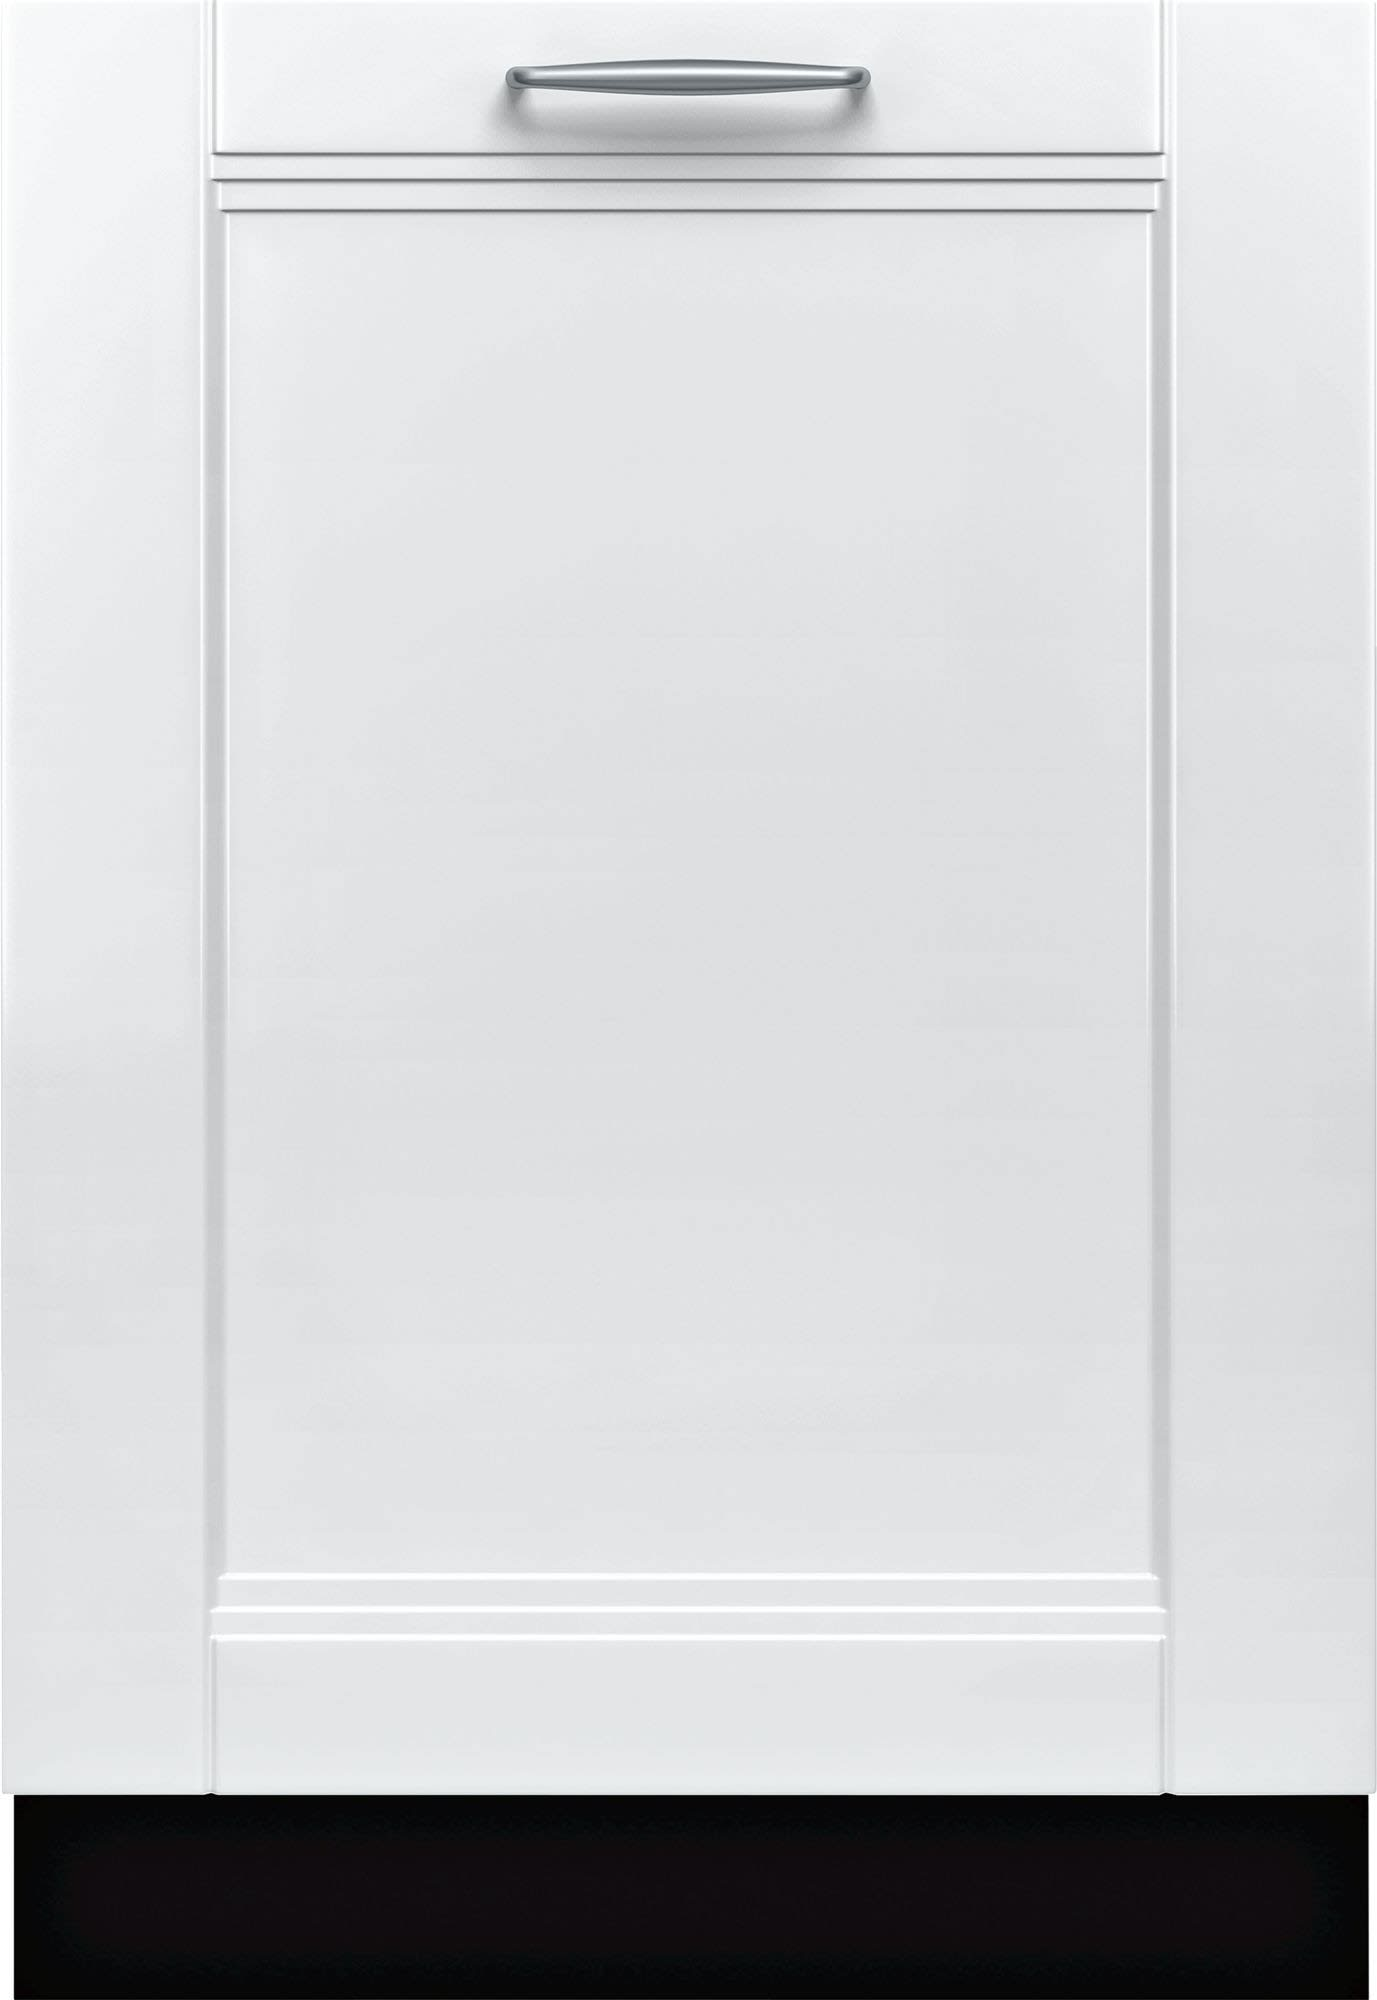 Bosch Shv89pw73n Fully Integrated Dishwasher With